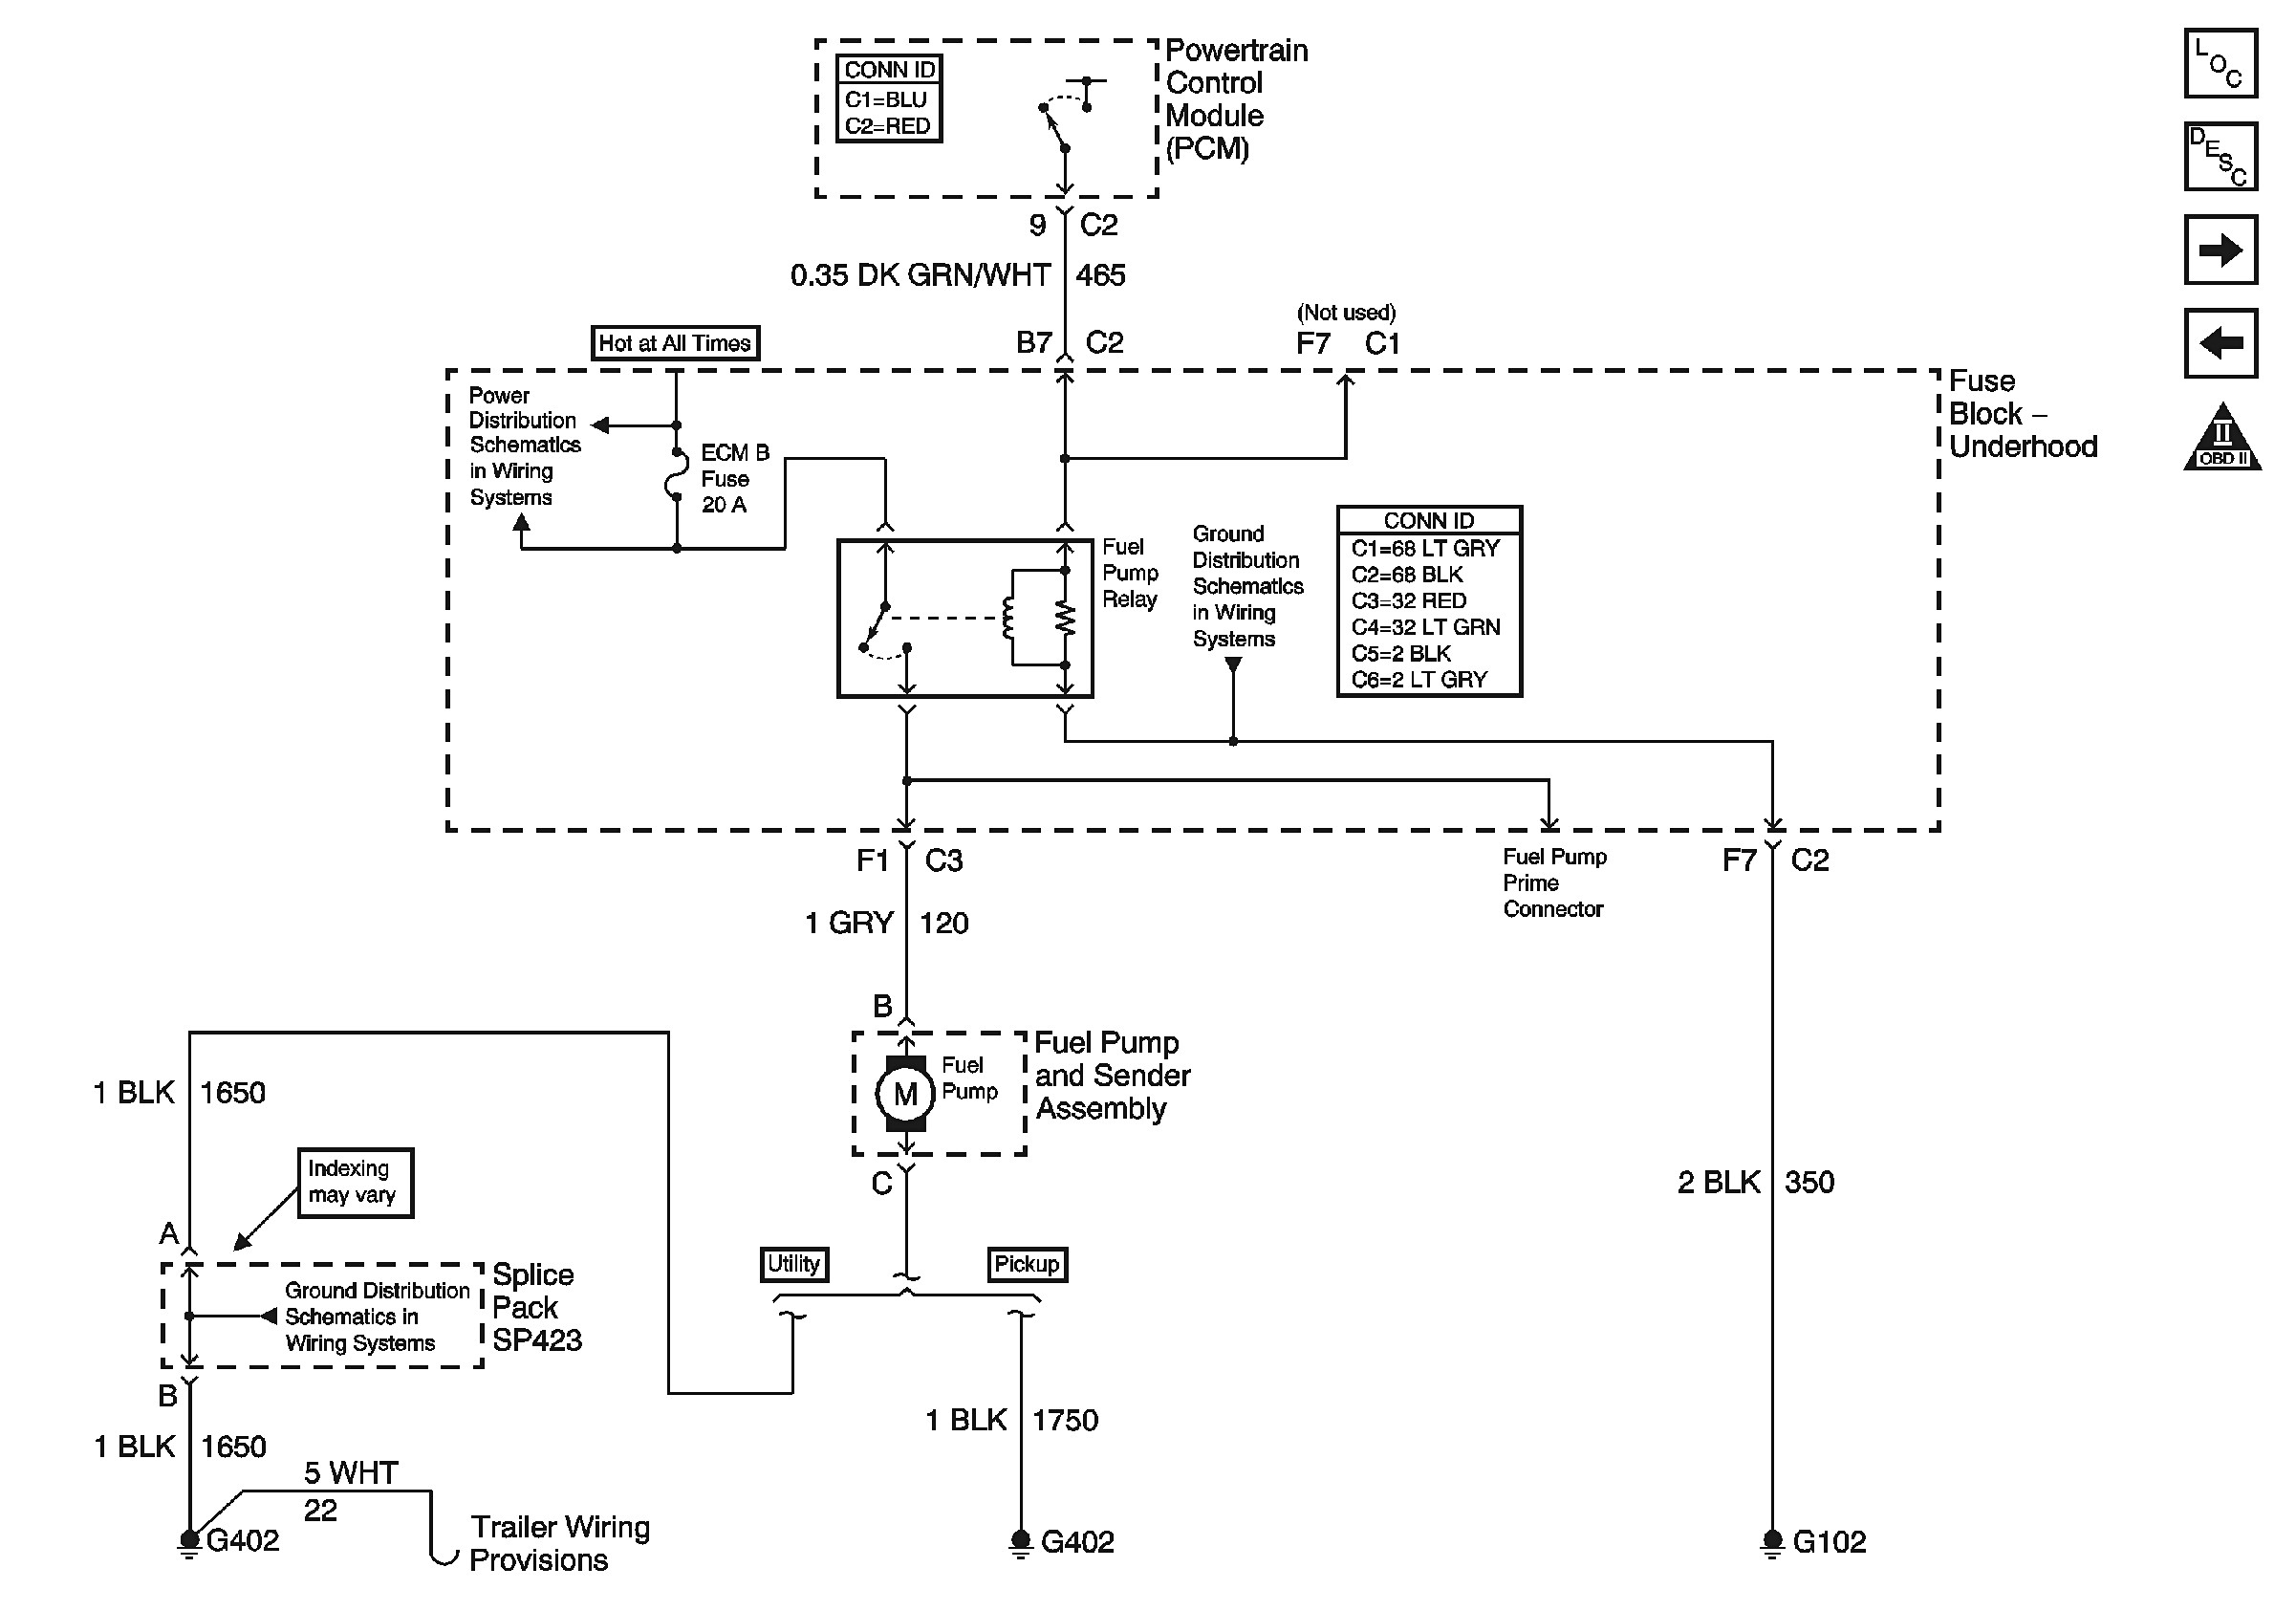 Fuel Pump Relay Wiring Diagram Best Of Ford In | Philteg.in - Ford Fuel Pump Relay Wiring Diagram